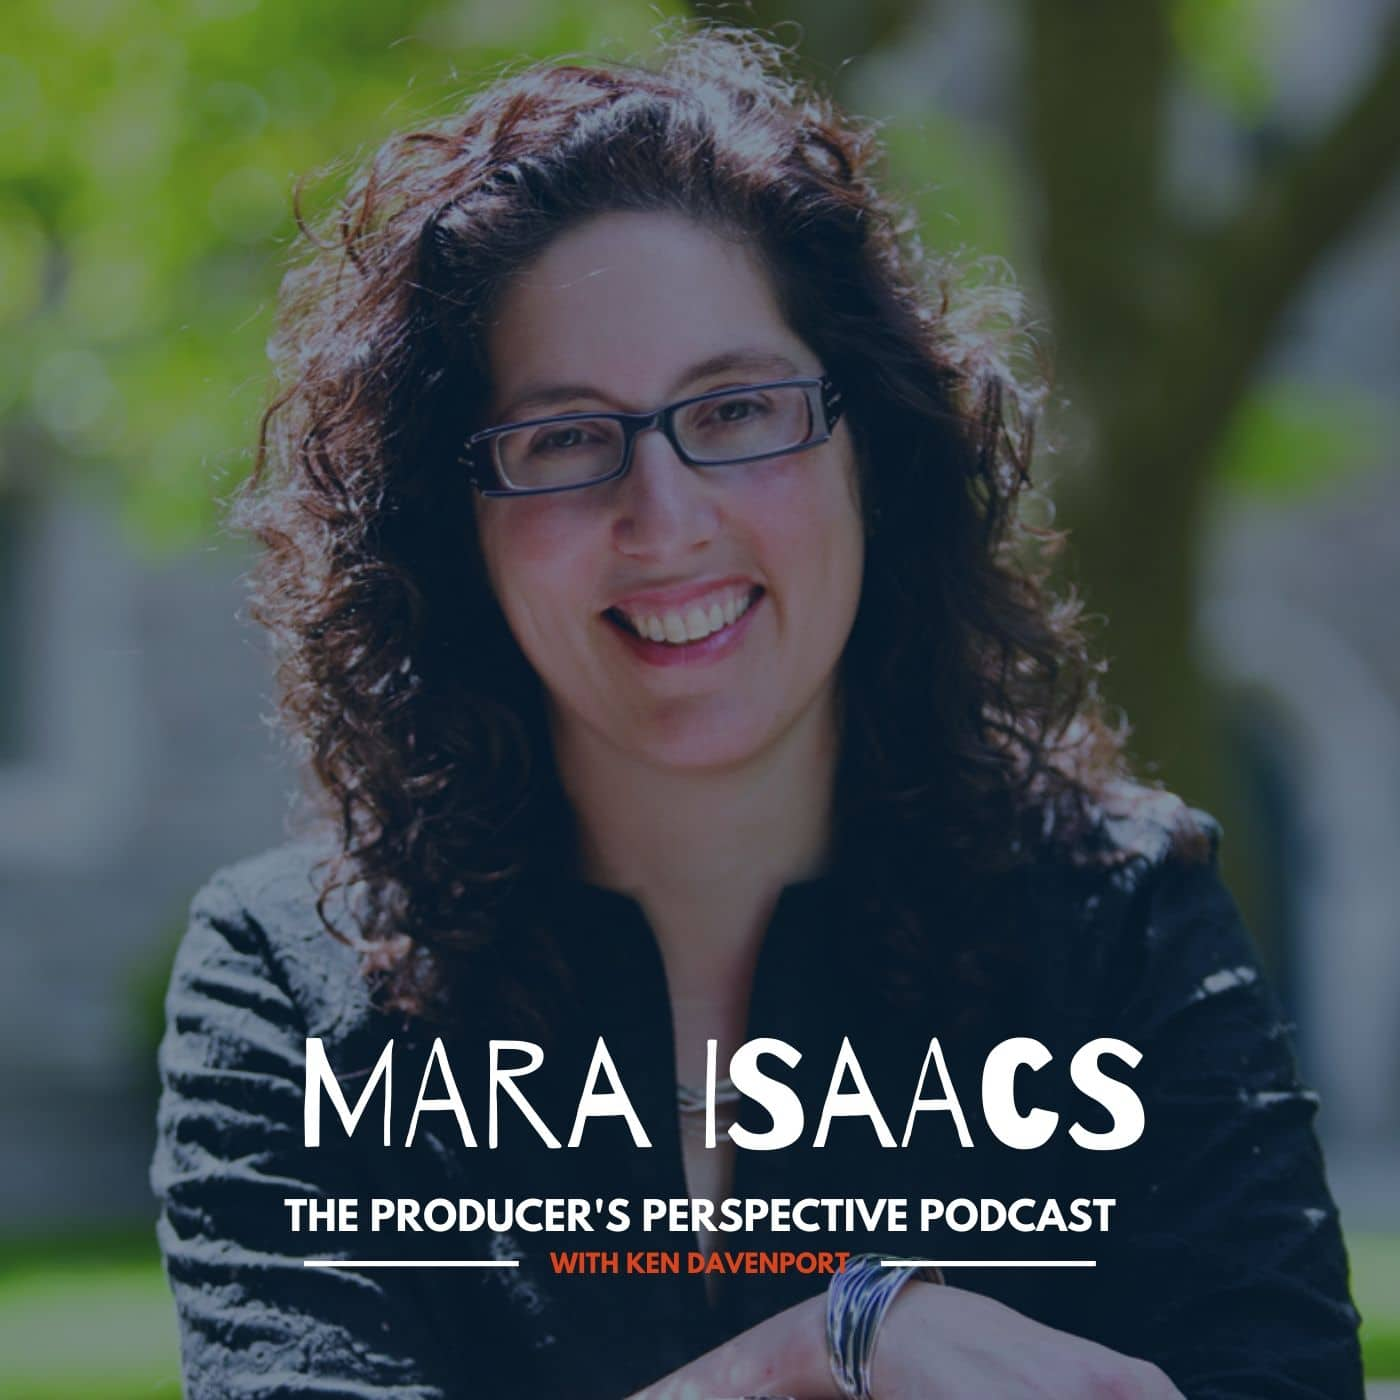 Ken Davenport's The Producer's Perspective Podcast Episode 200 - Mara Isaacs